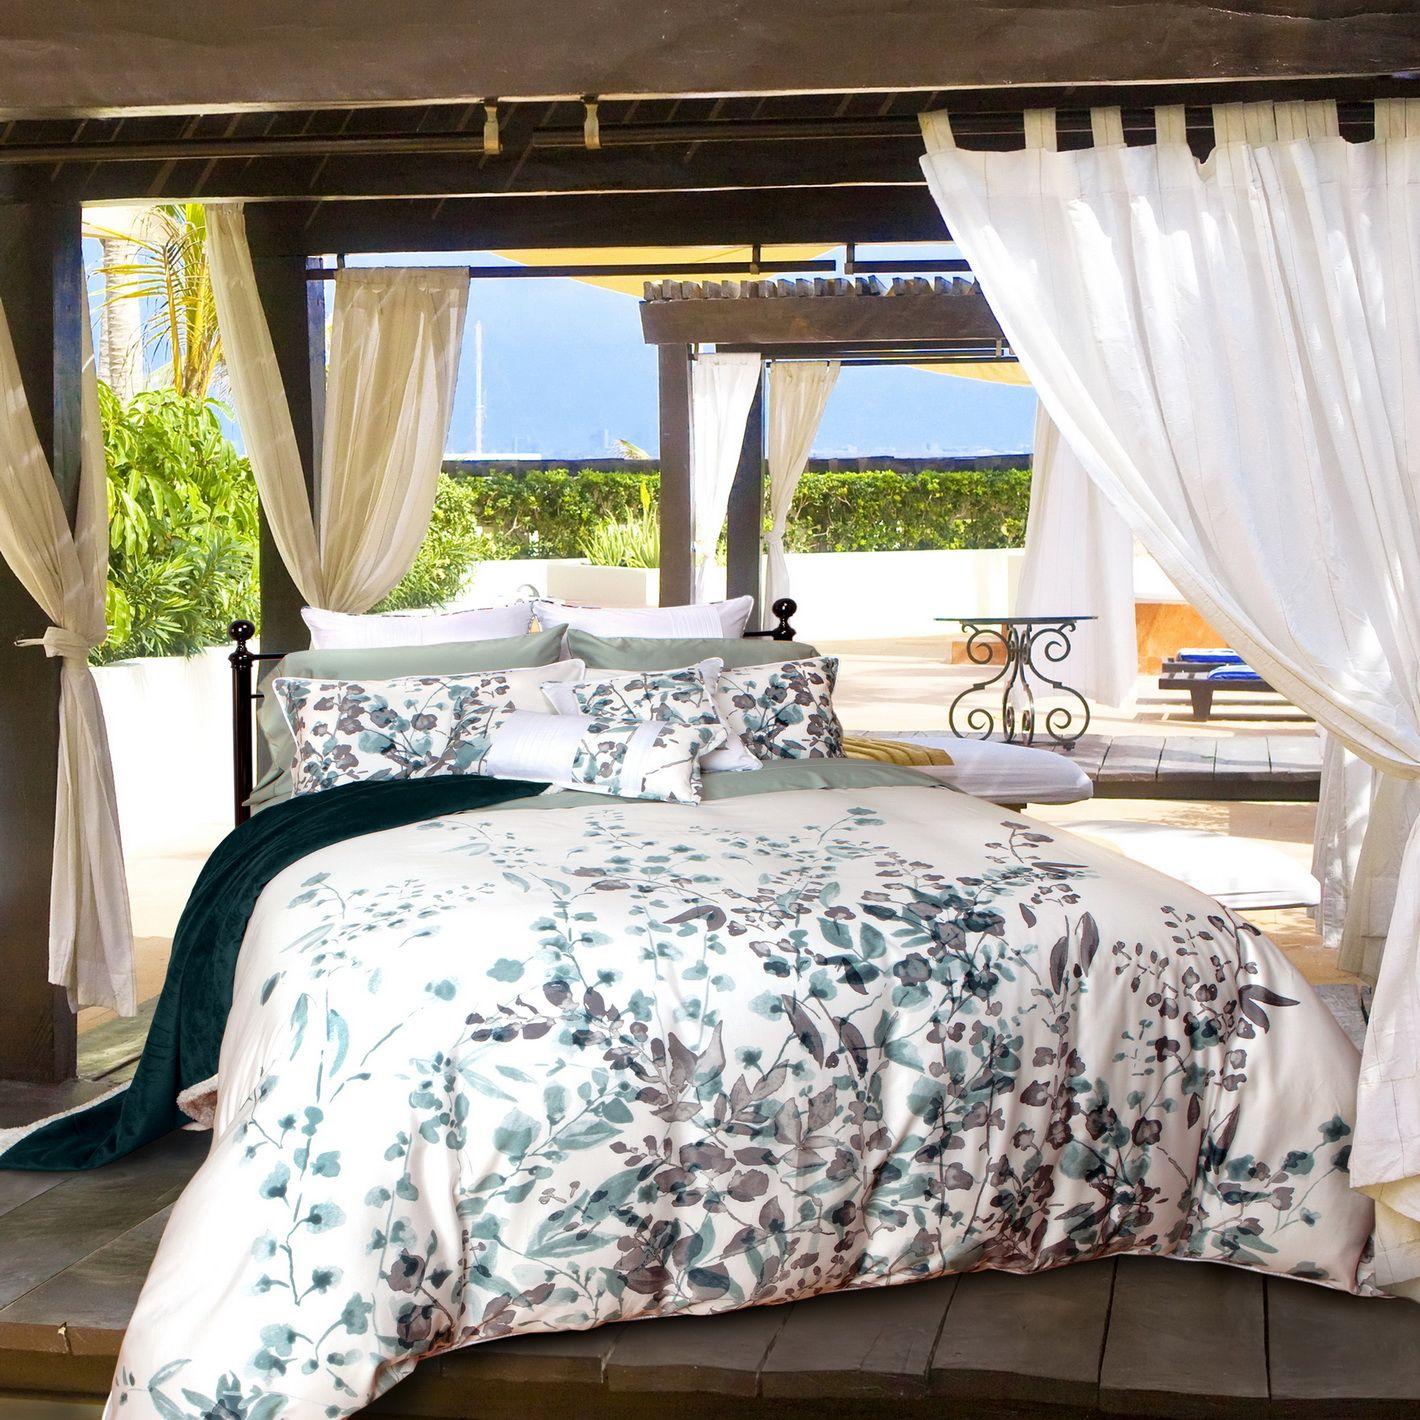 Carlingdale Ibiza Collection: Quilts Etc. | Bedroom | Pinterest ... : quilts etc - Adamdwight.com